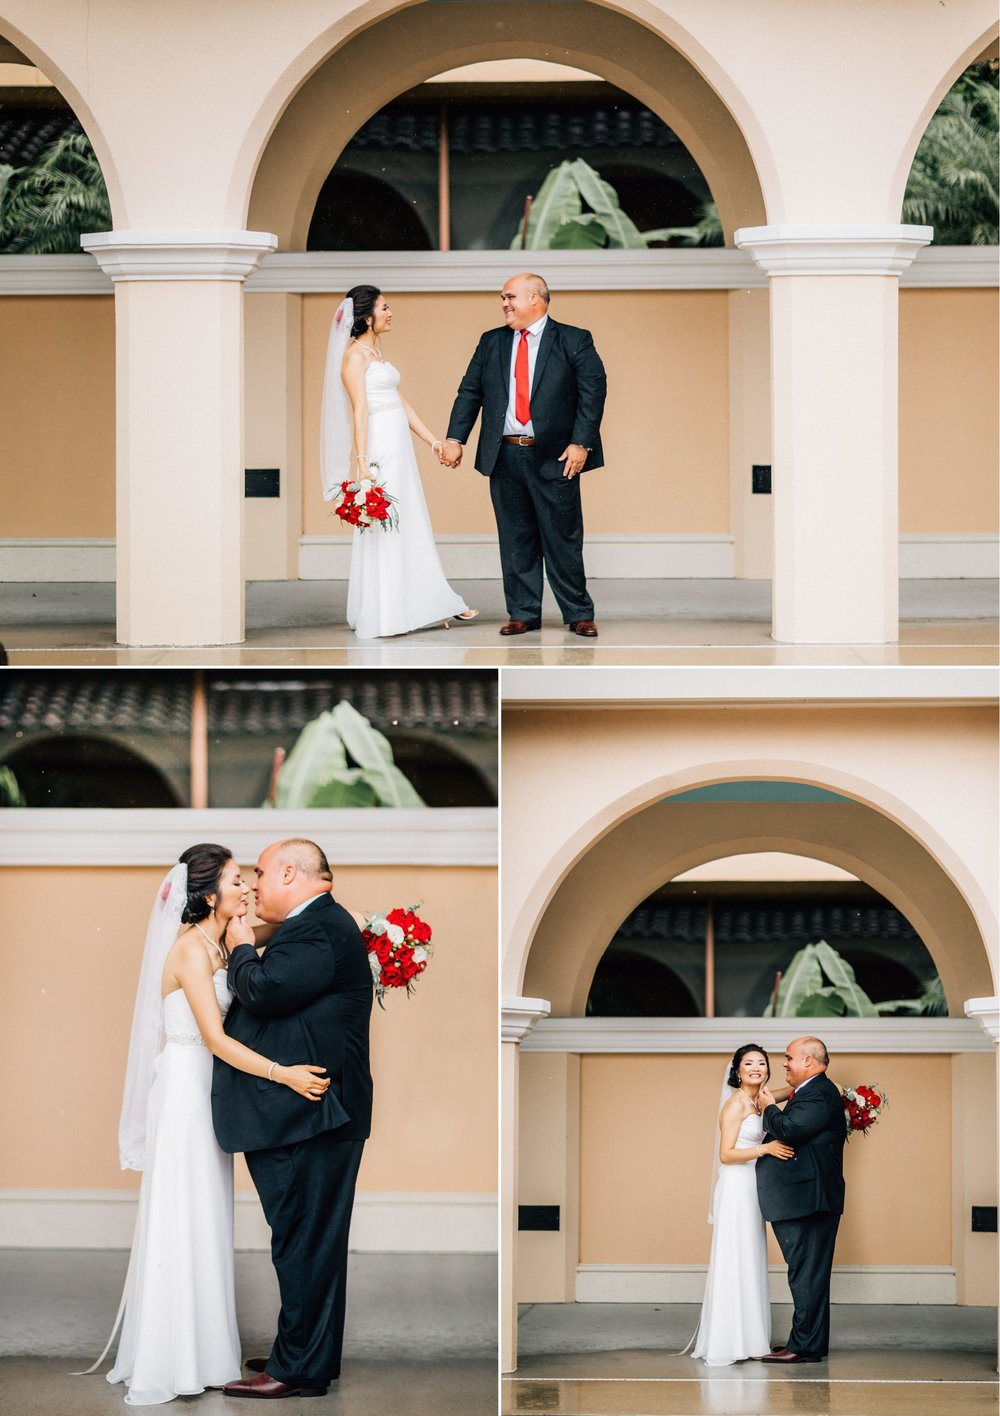 Lakehouse Lake Nona Wedding- Modern Colorful Red Multicultural- Susan + Manolo 15.jpg